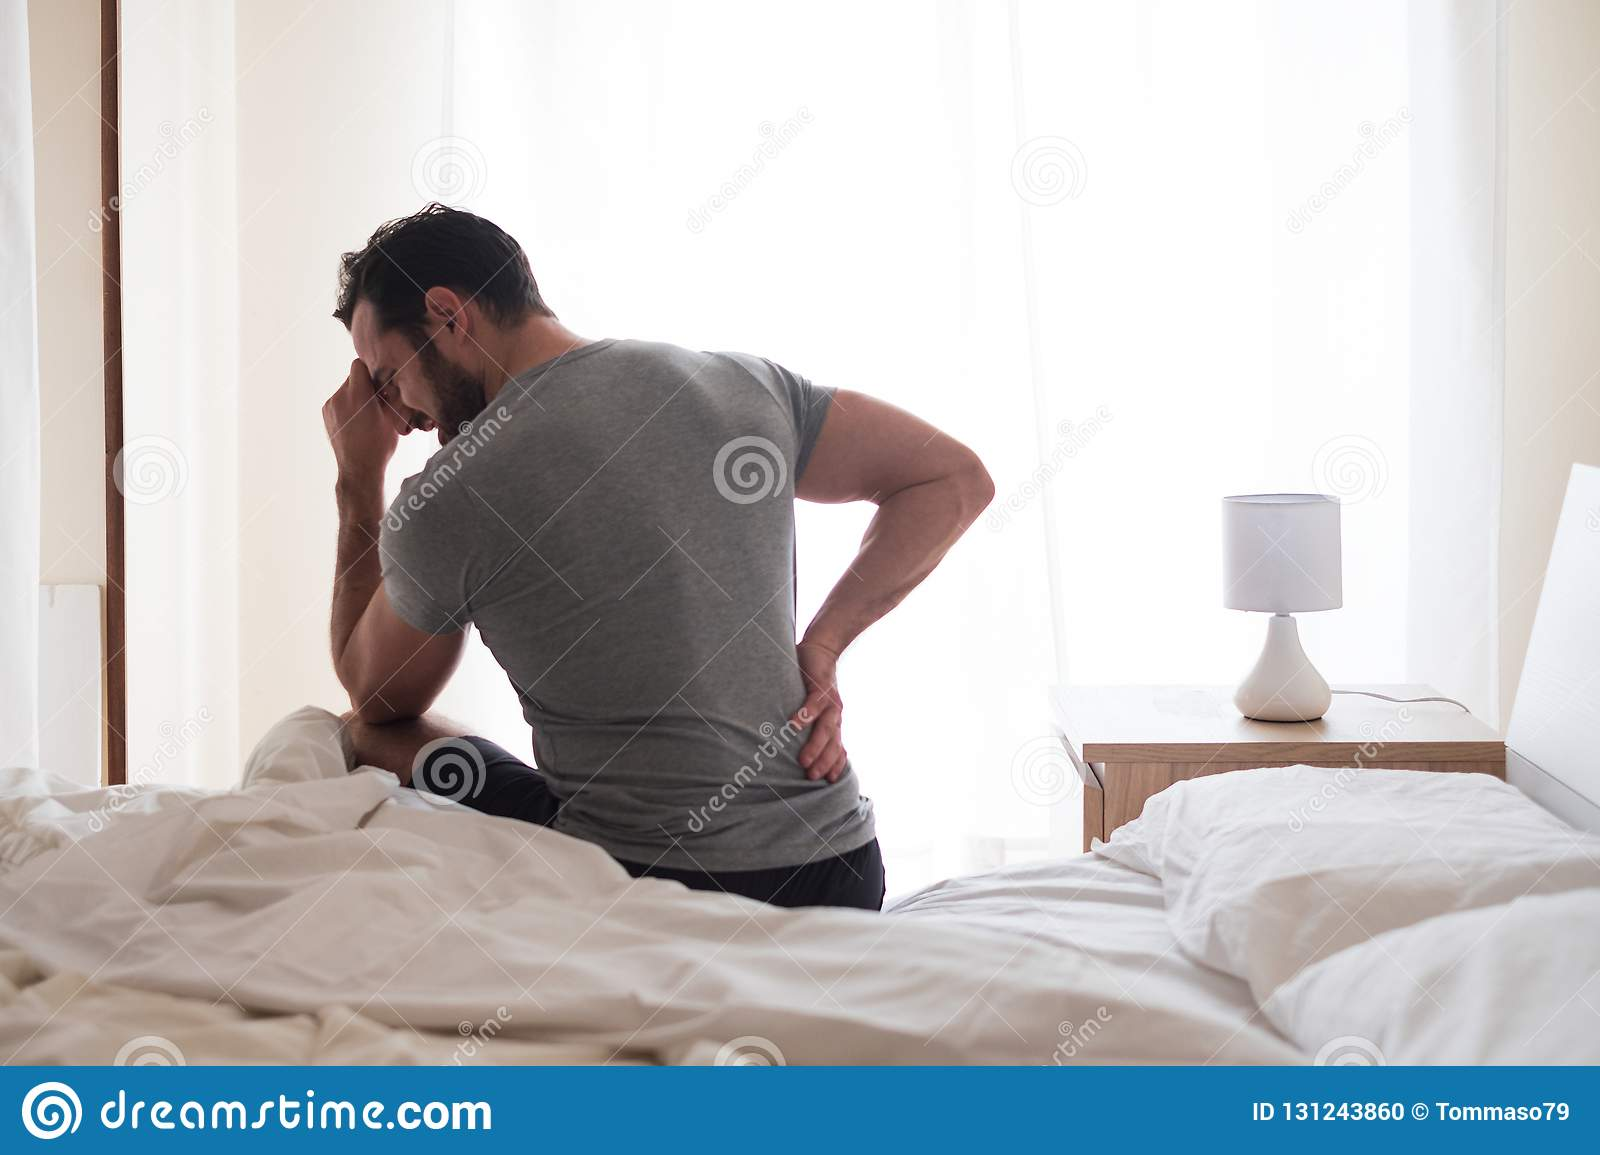 Night Back Pain: Causes and Treatment - WebMD